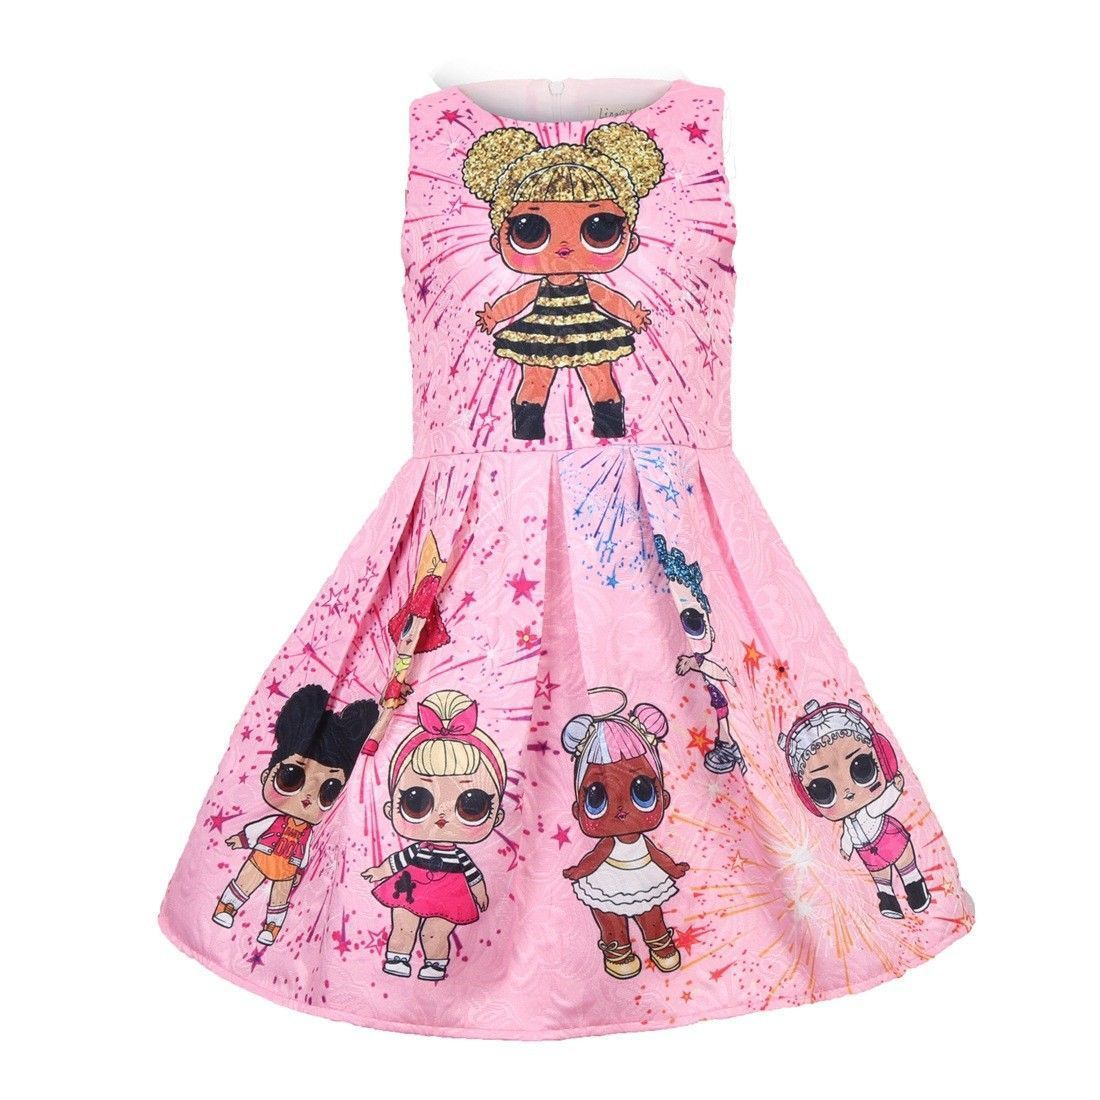 UK LOL Surprise Doll Girls Princess Dress Party Pageant Holiday festival ForKids